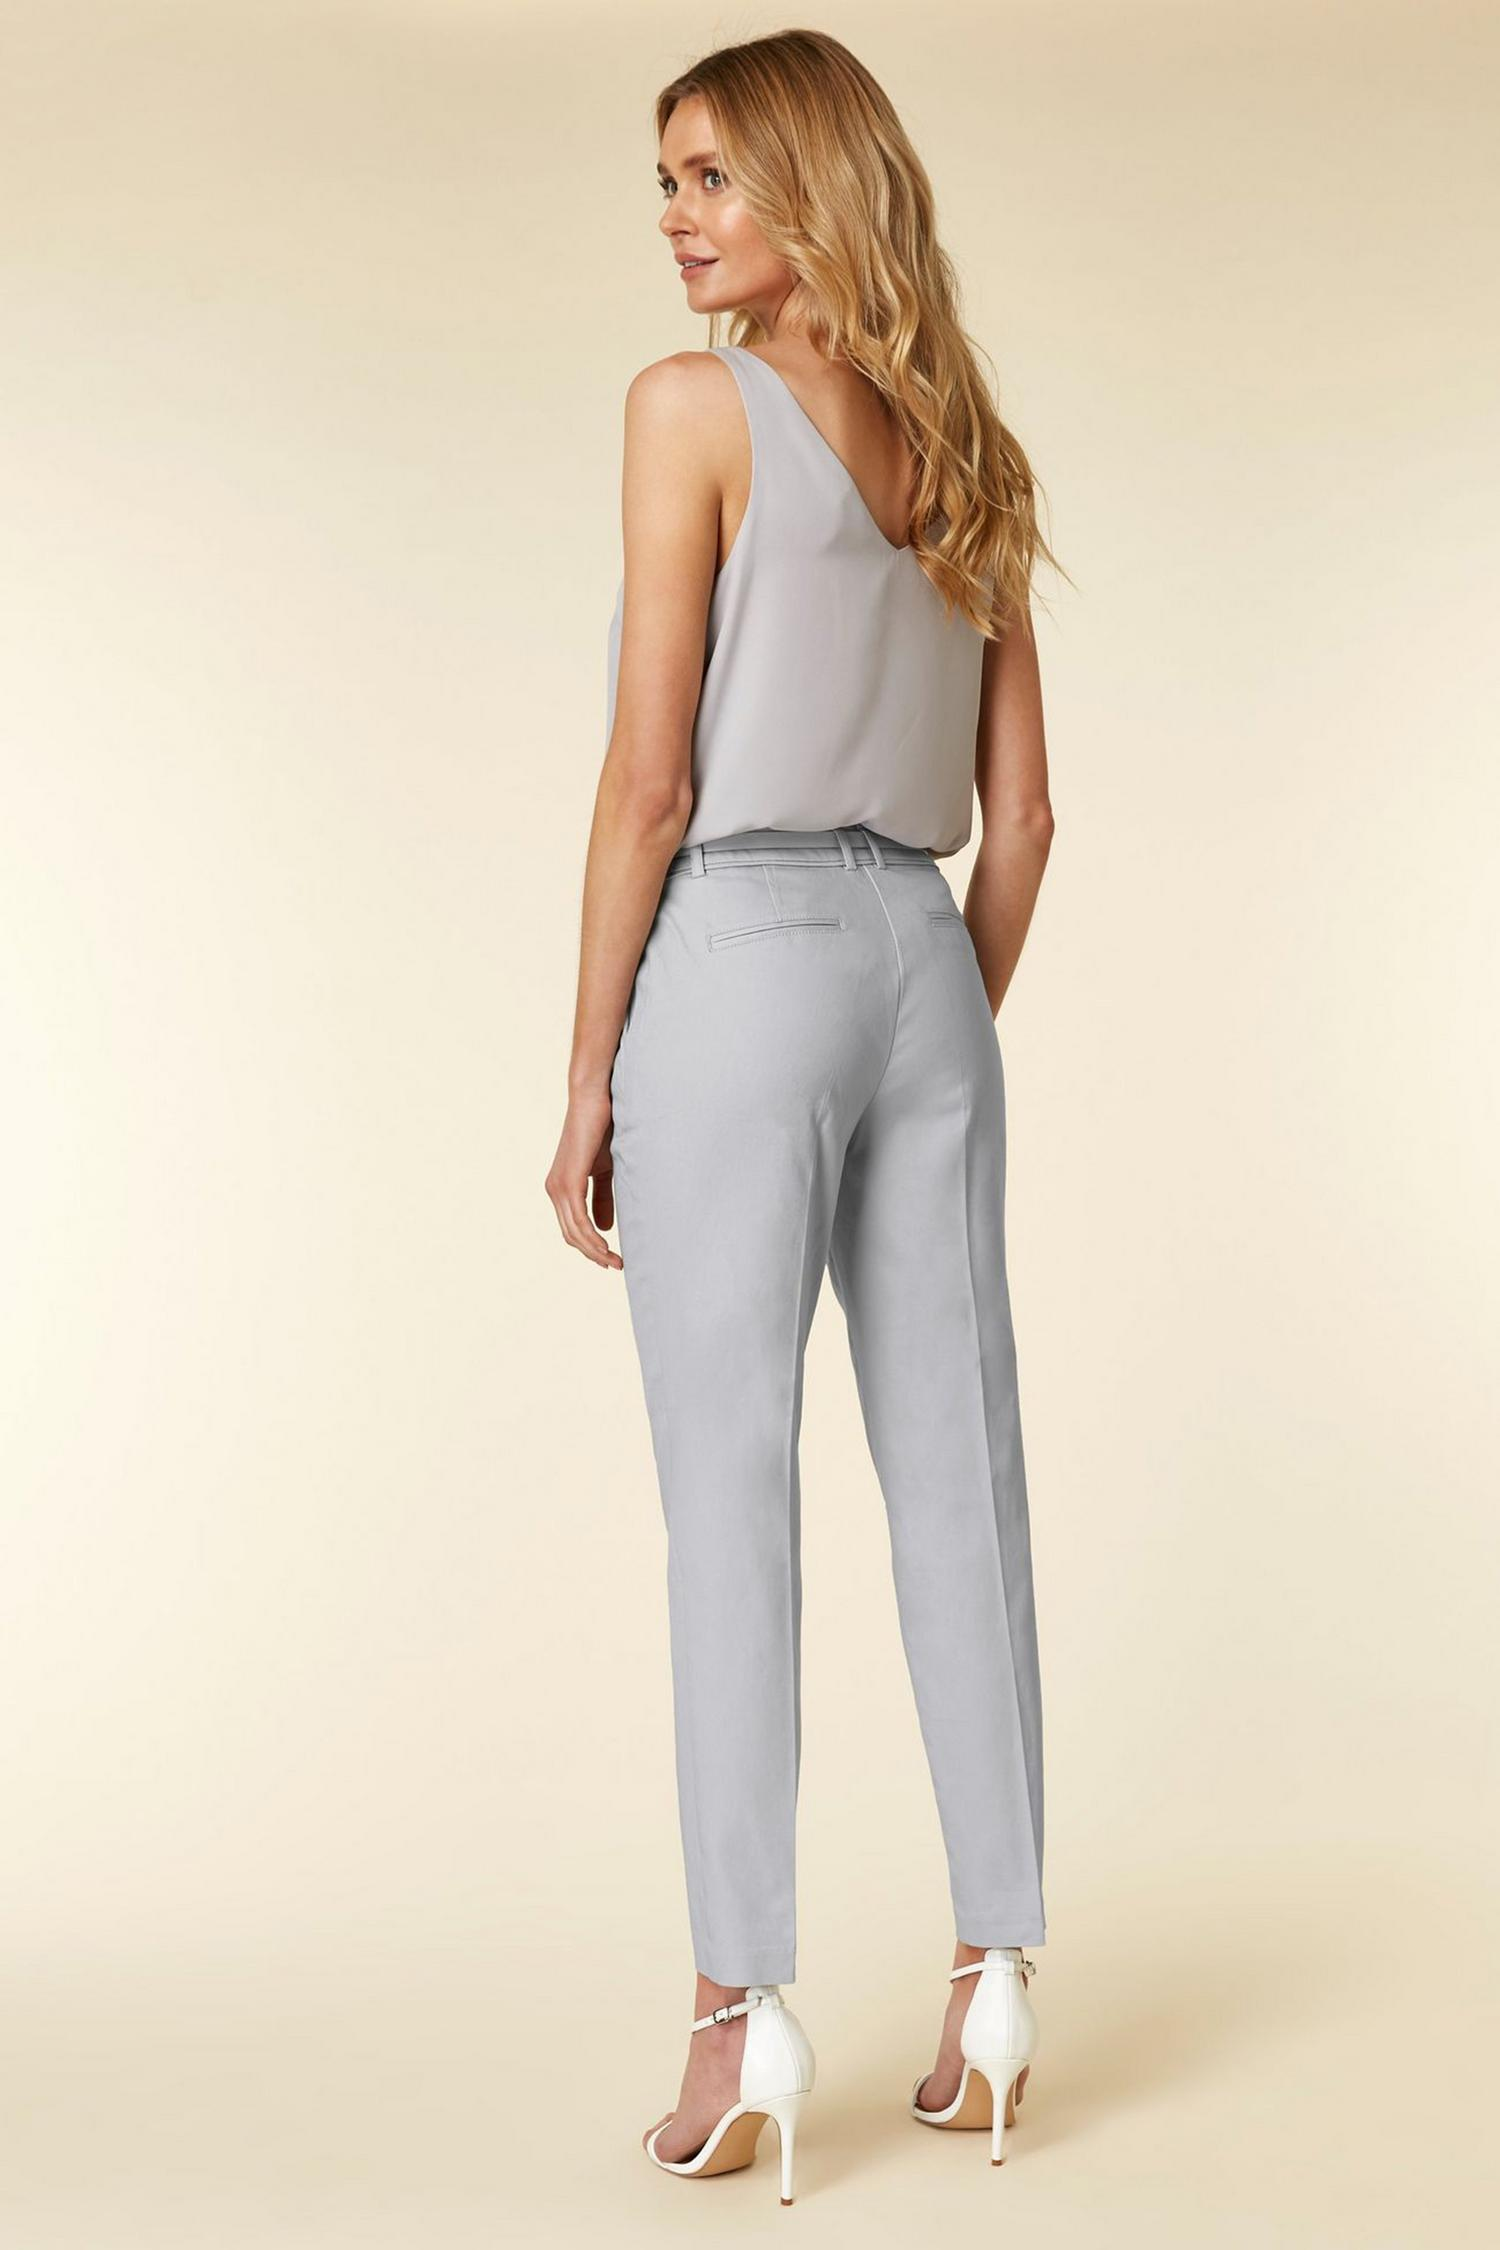 131 Grey Belted Cigarette Trousers image number 2